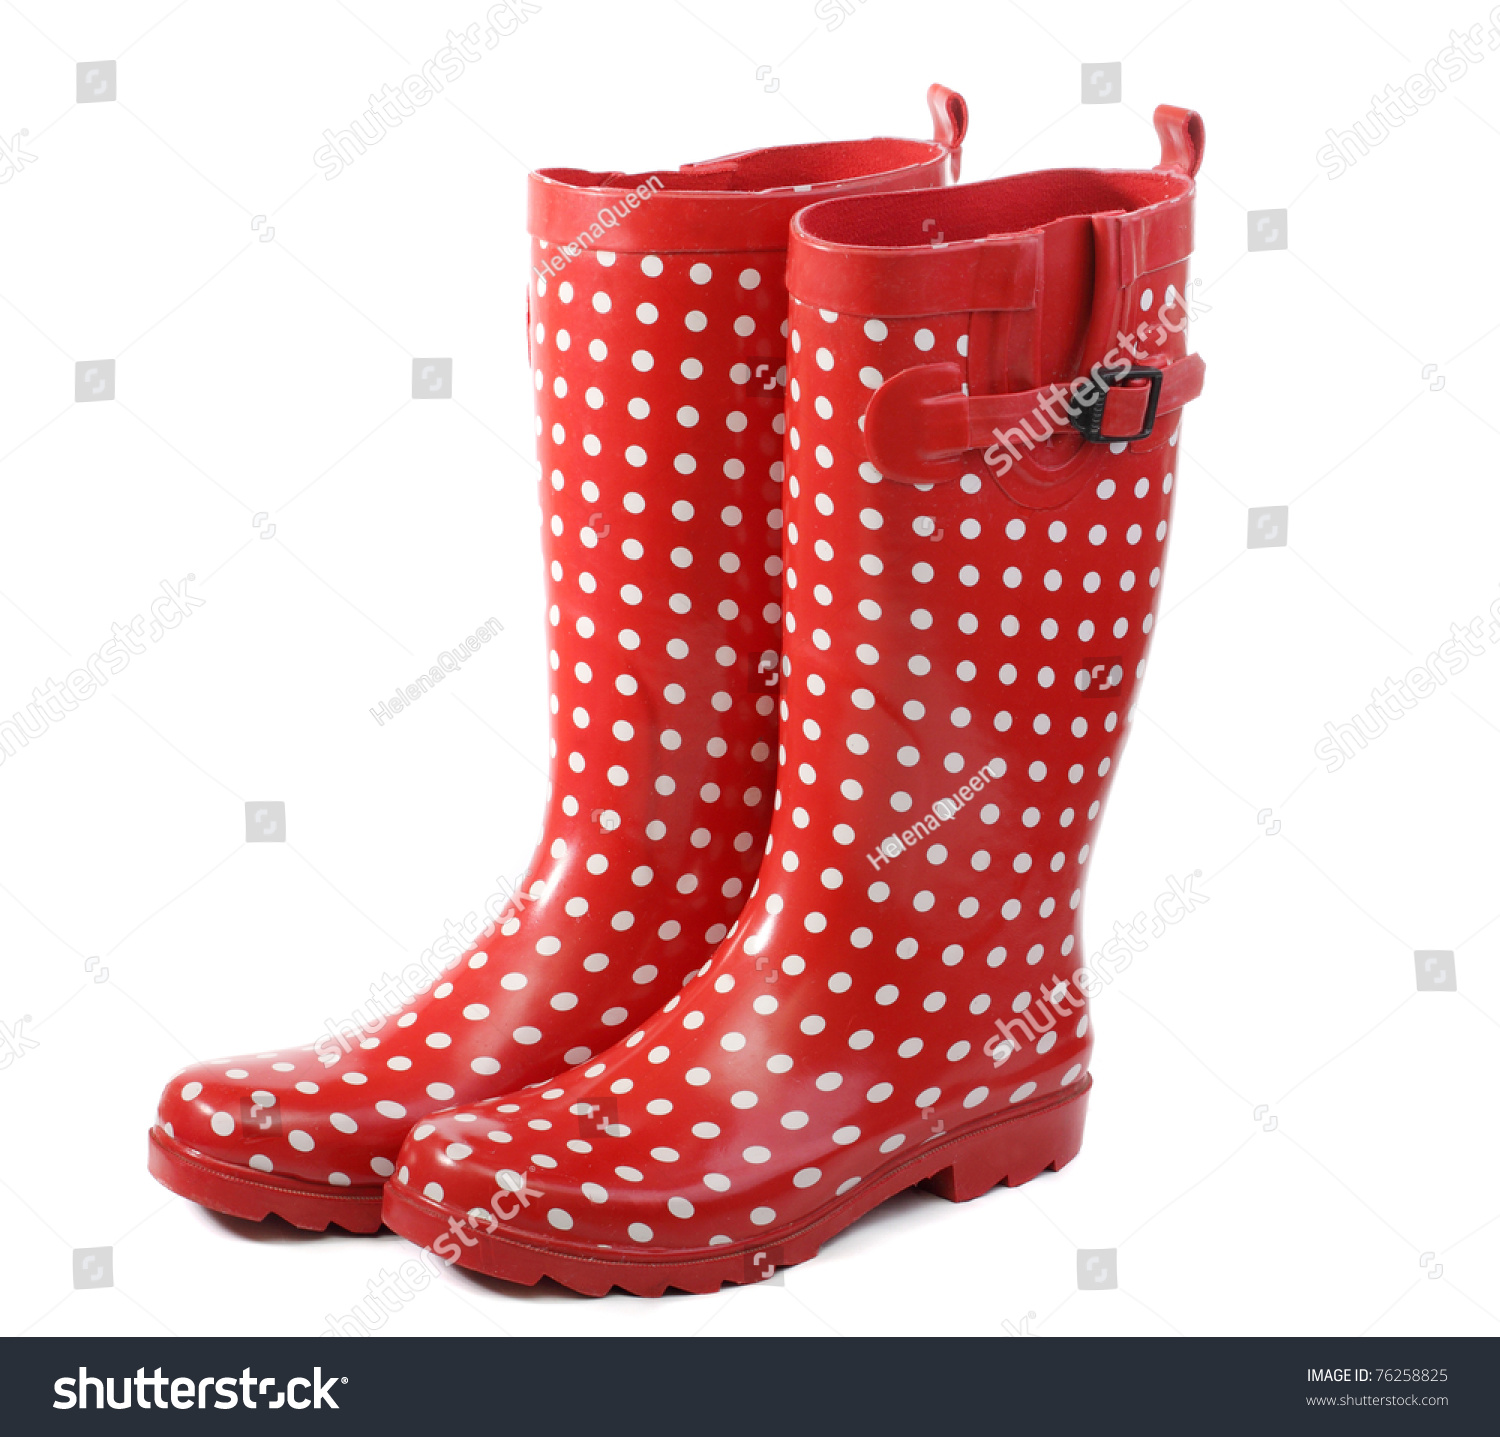 Polka Dot Red Rain Boots Stock Photo 76258825 - Shutterstock